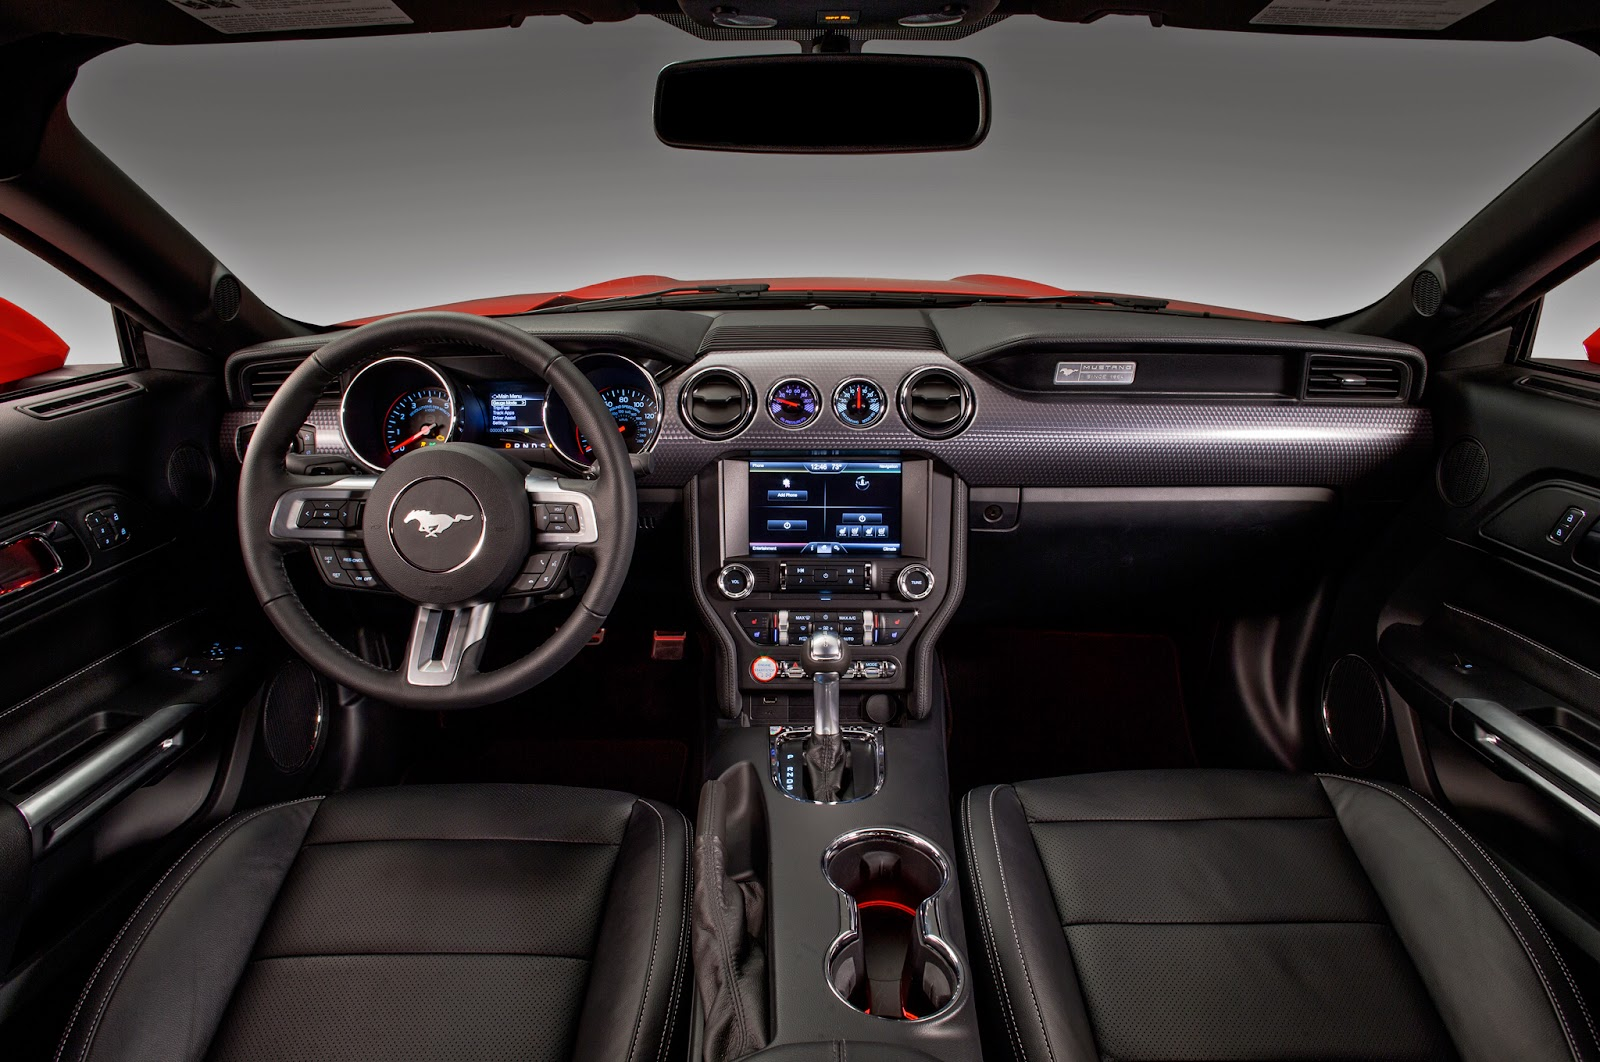 2015 ford mustang interior pictures - 2014 Ford Mustang Convertible Interior